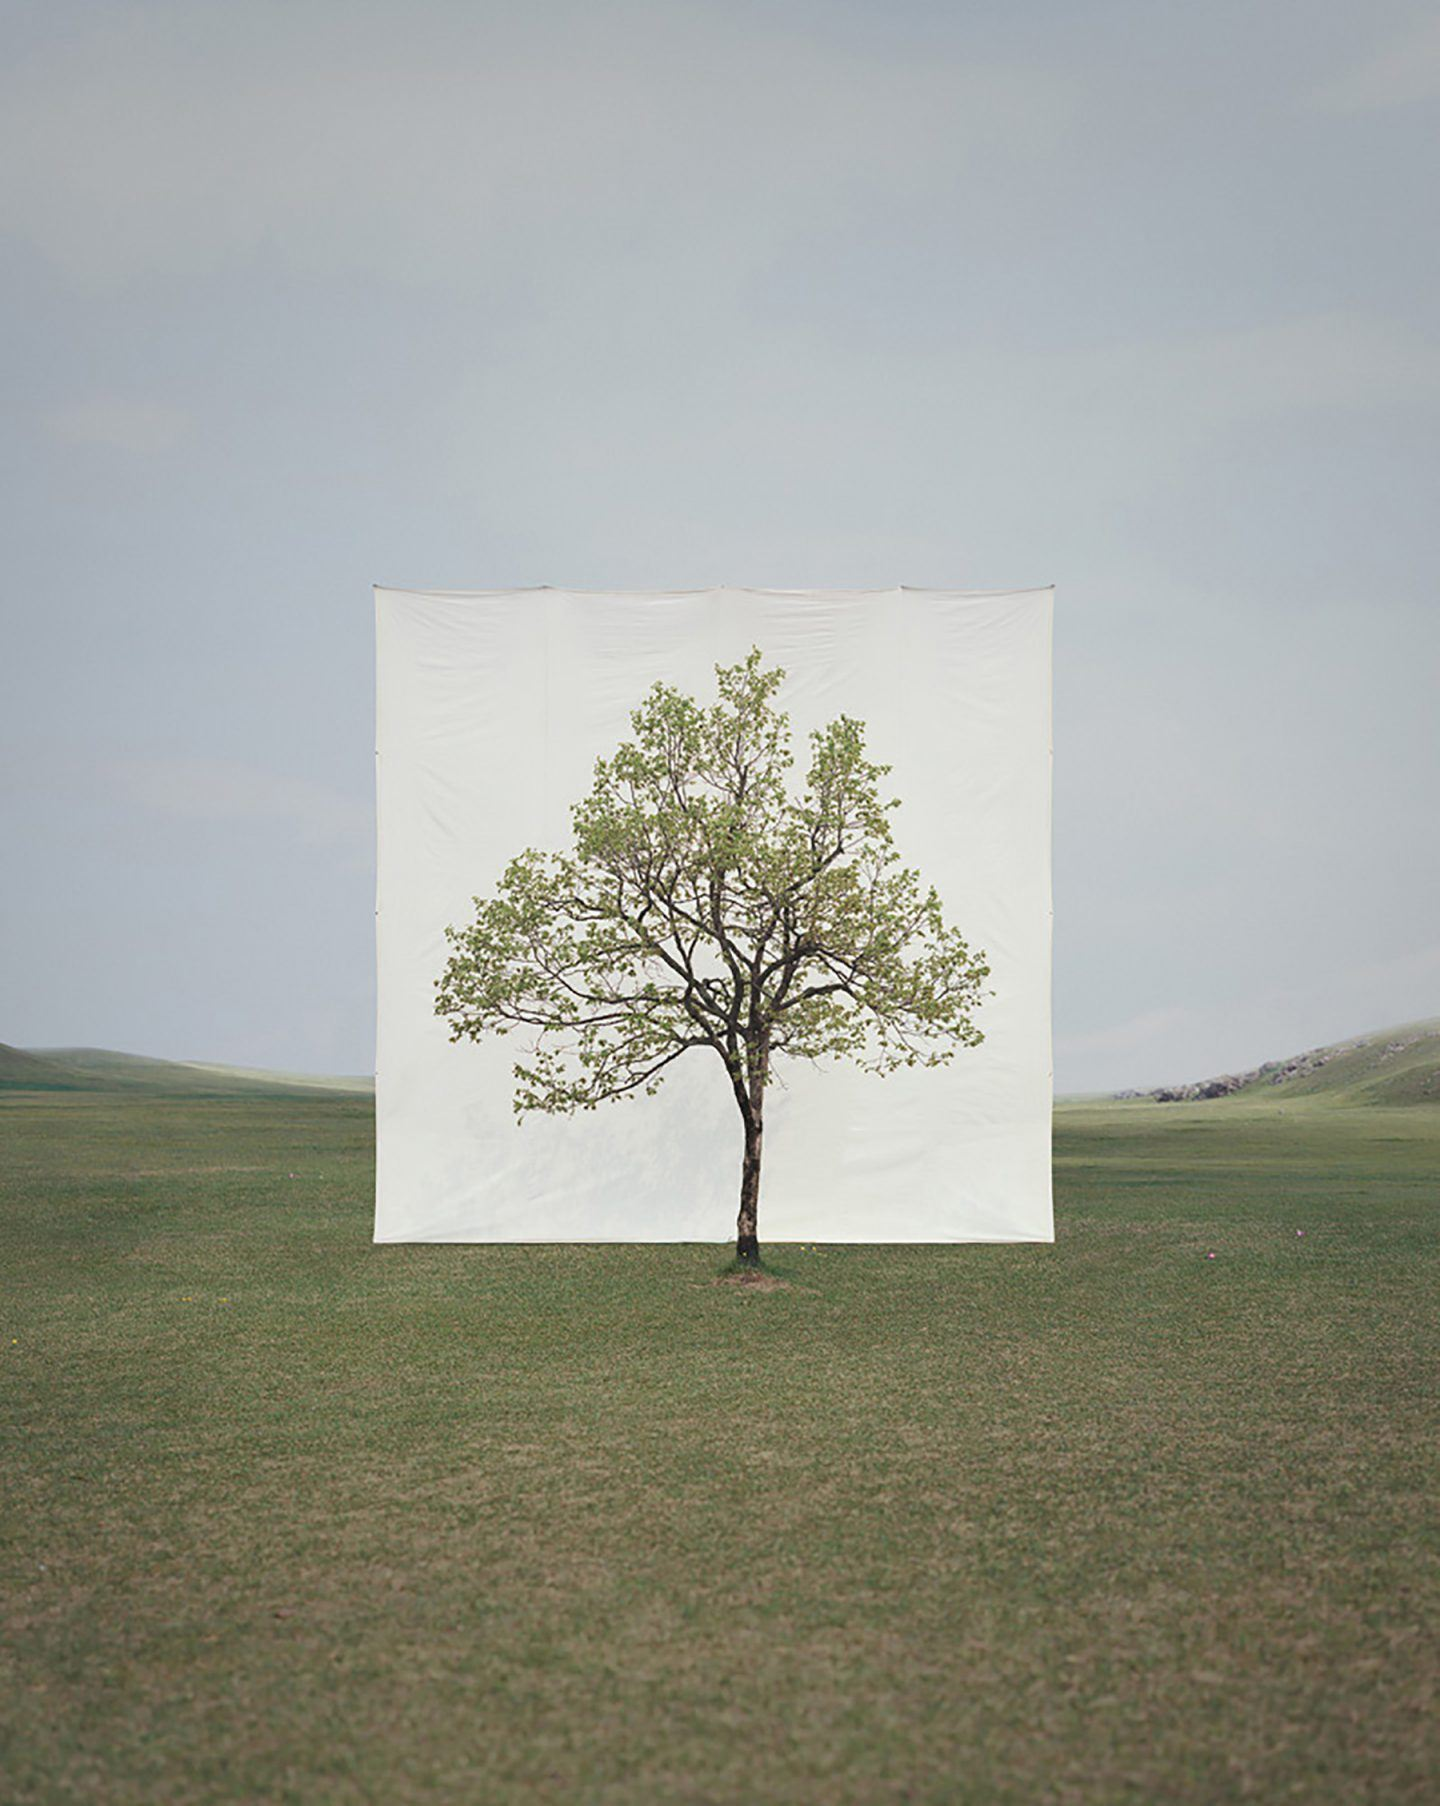 IGNANT-Art-Myoung-Ho-Lee-Tree-17